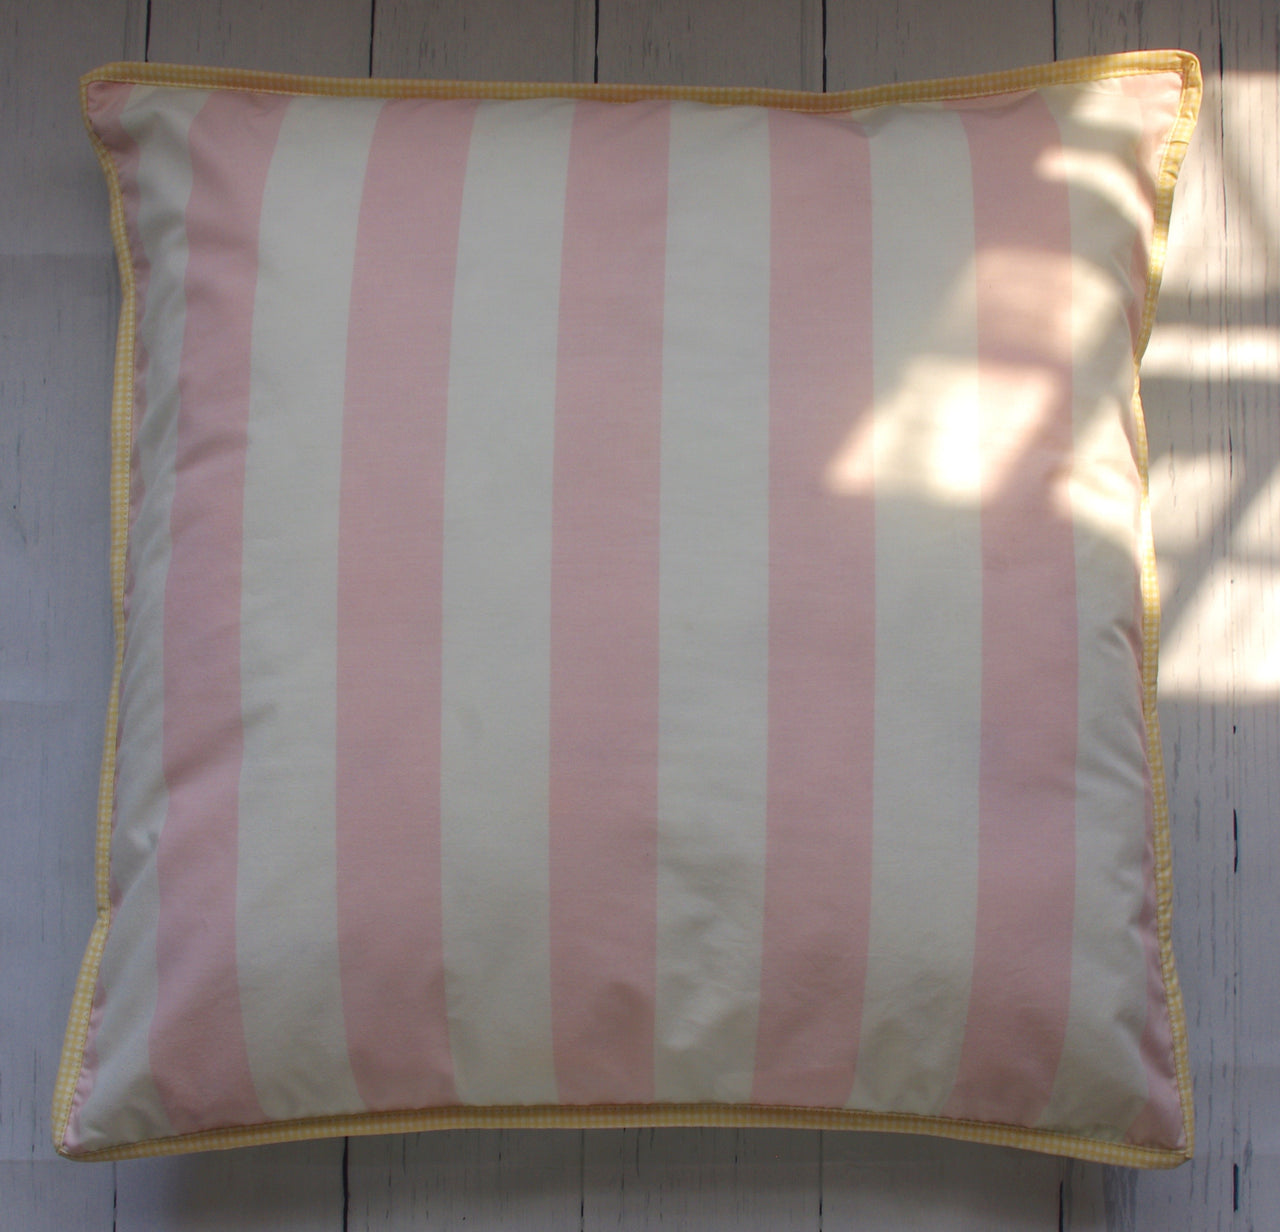 eco-friendly-sustainable-repurposed-handmade-home-decor-floor-pillow-bigtop-stripe-square-floor-pillow-front